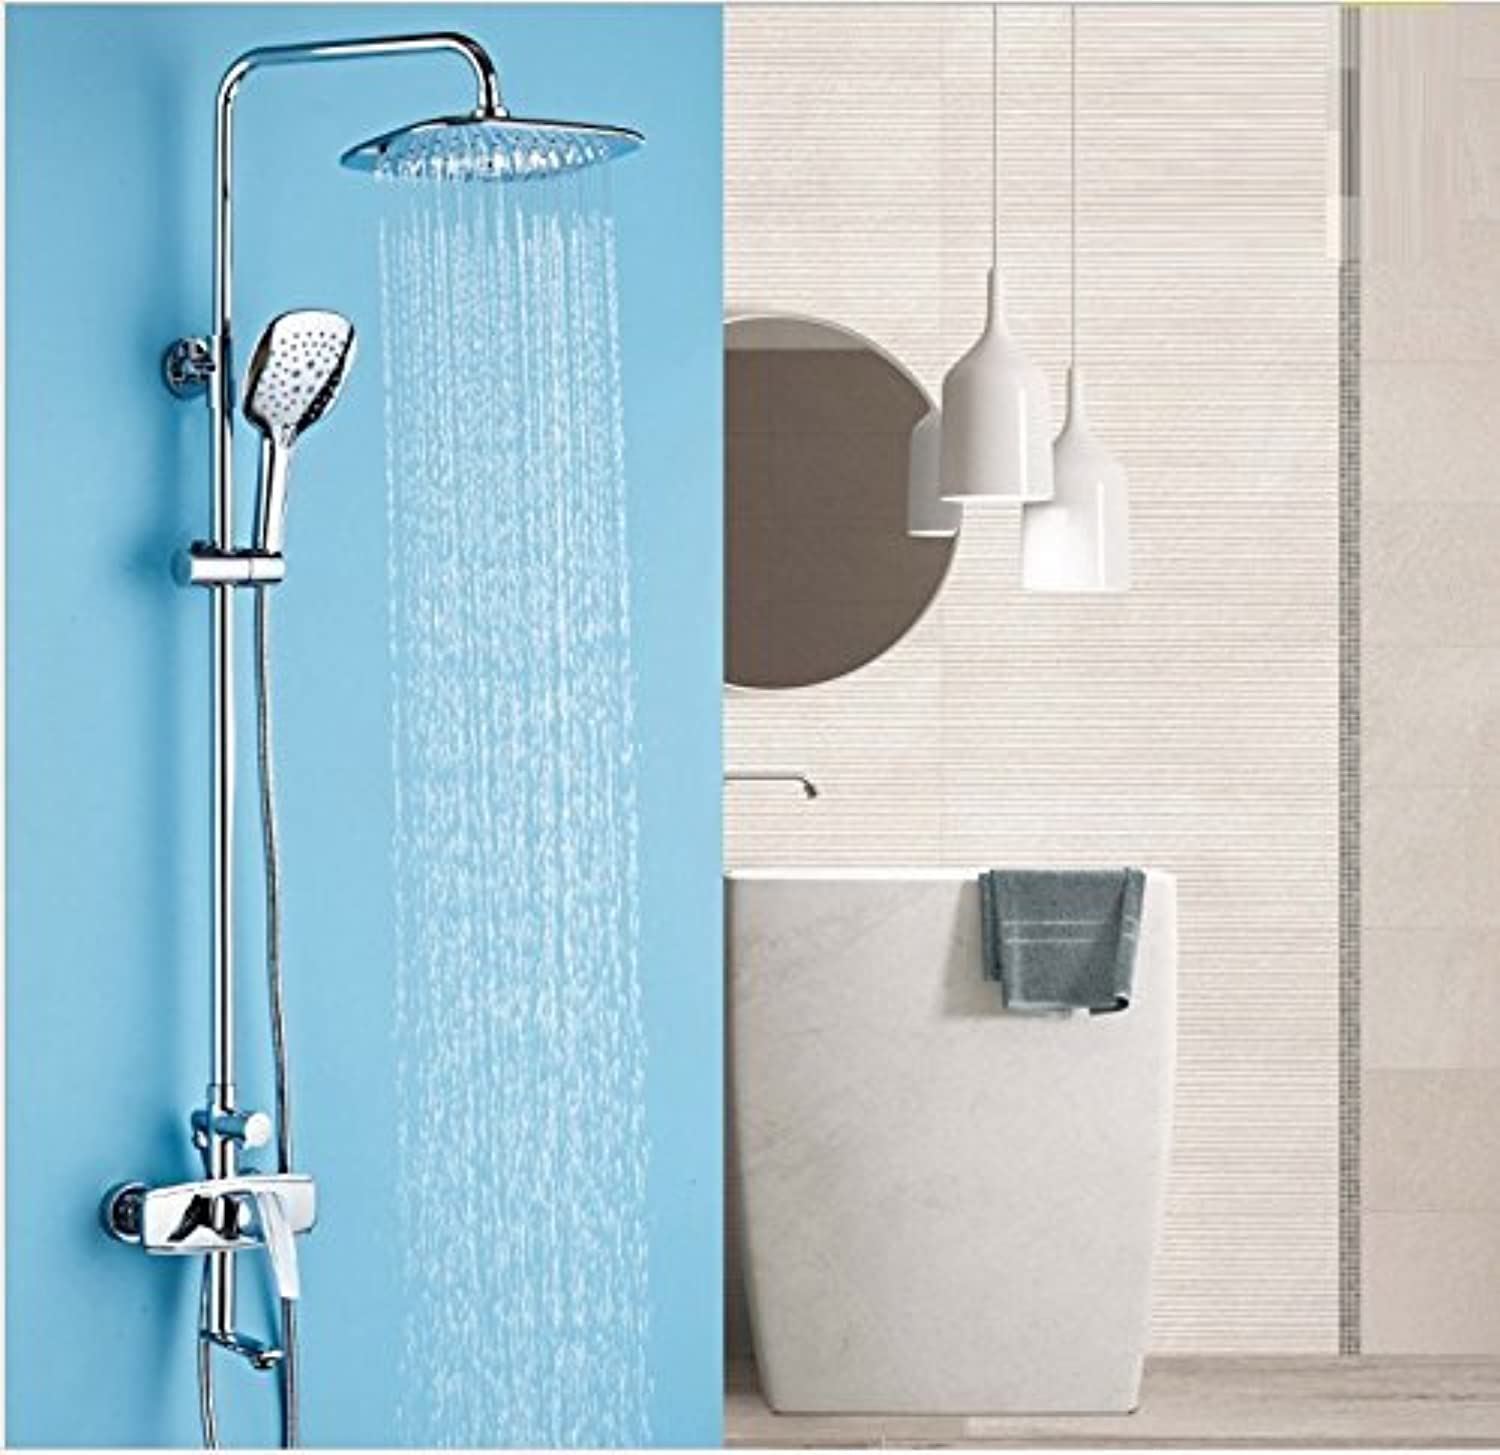 Handheld Shower, All The Copper of The Cold Water of The Hot Water A Electrodeposition of Control of The Function of Three Keys